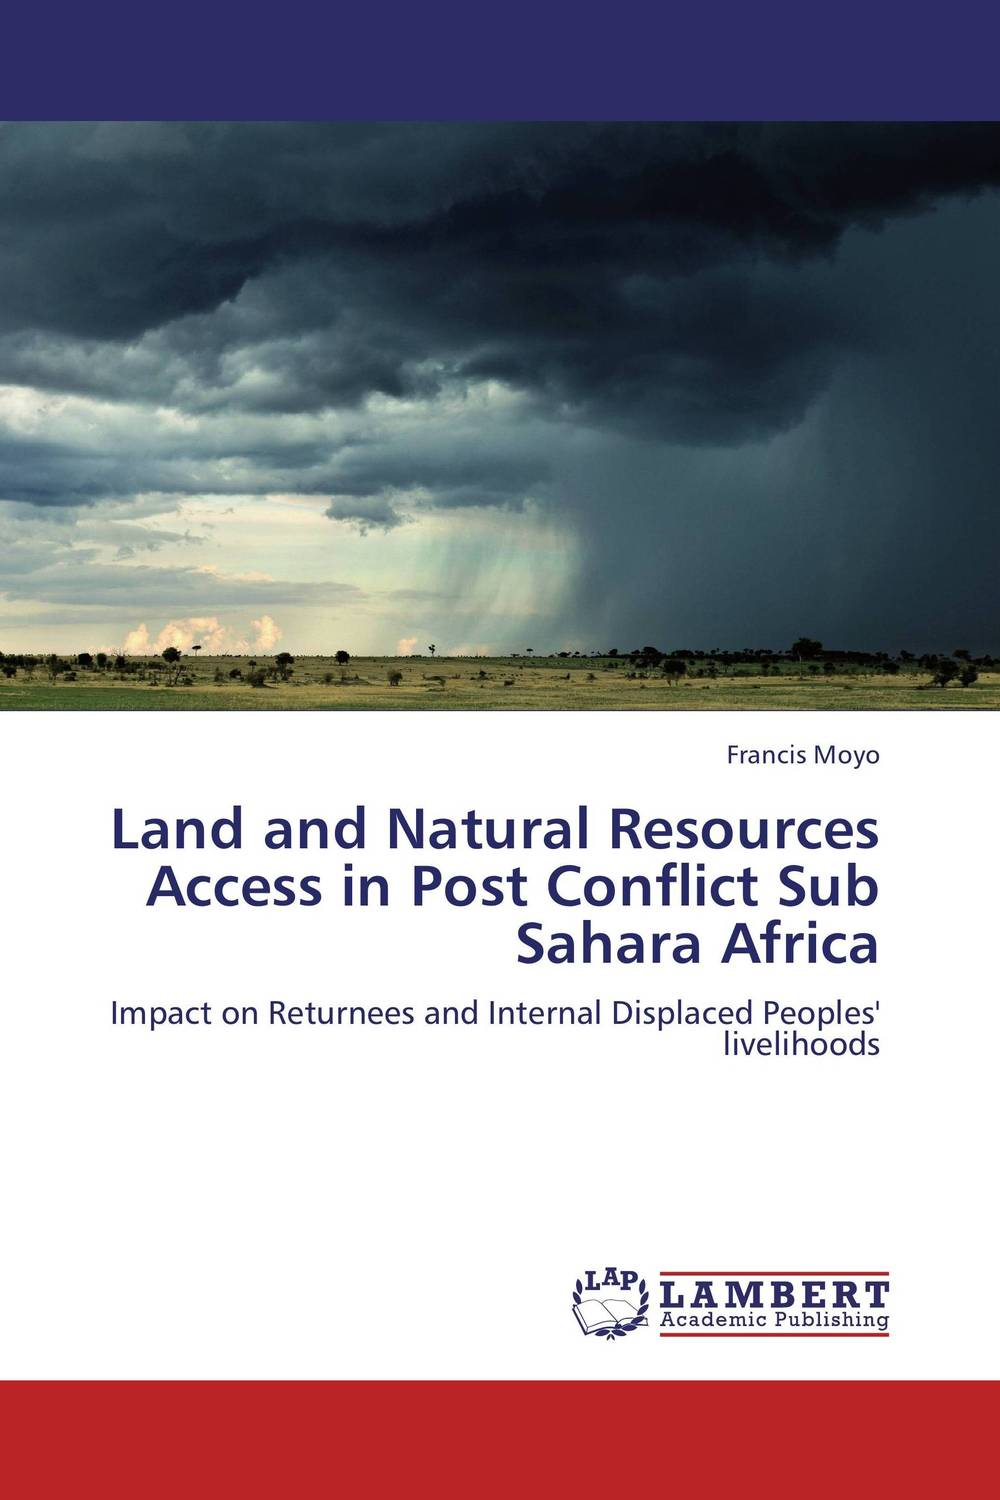 Land and Natural Resources Access in Post Conflict Sub Sahara Africa conflicts in forest resources usage and management